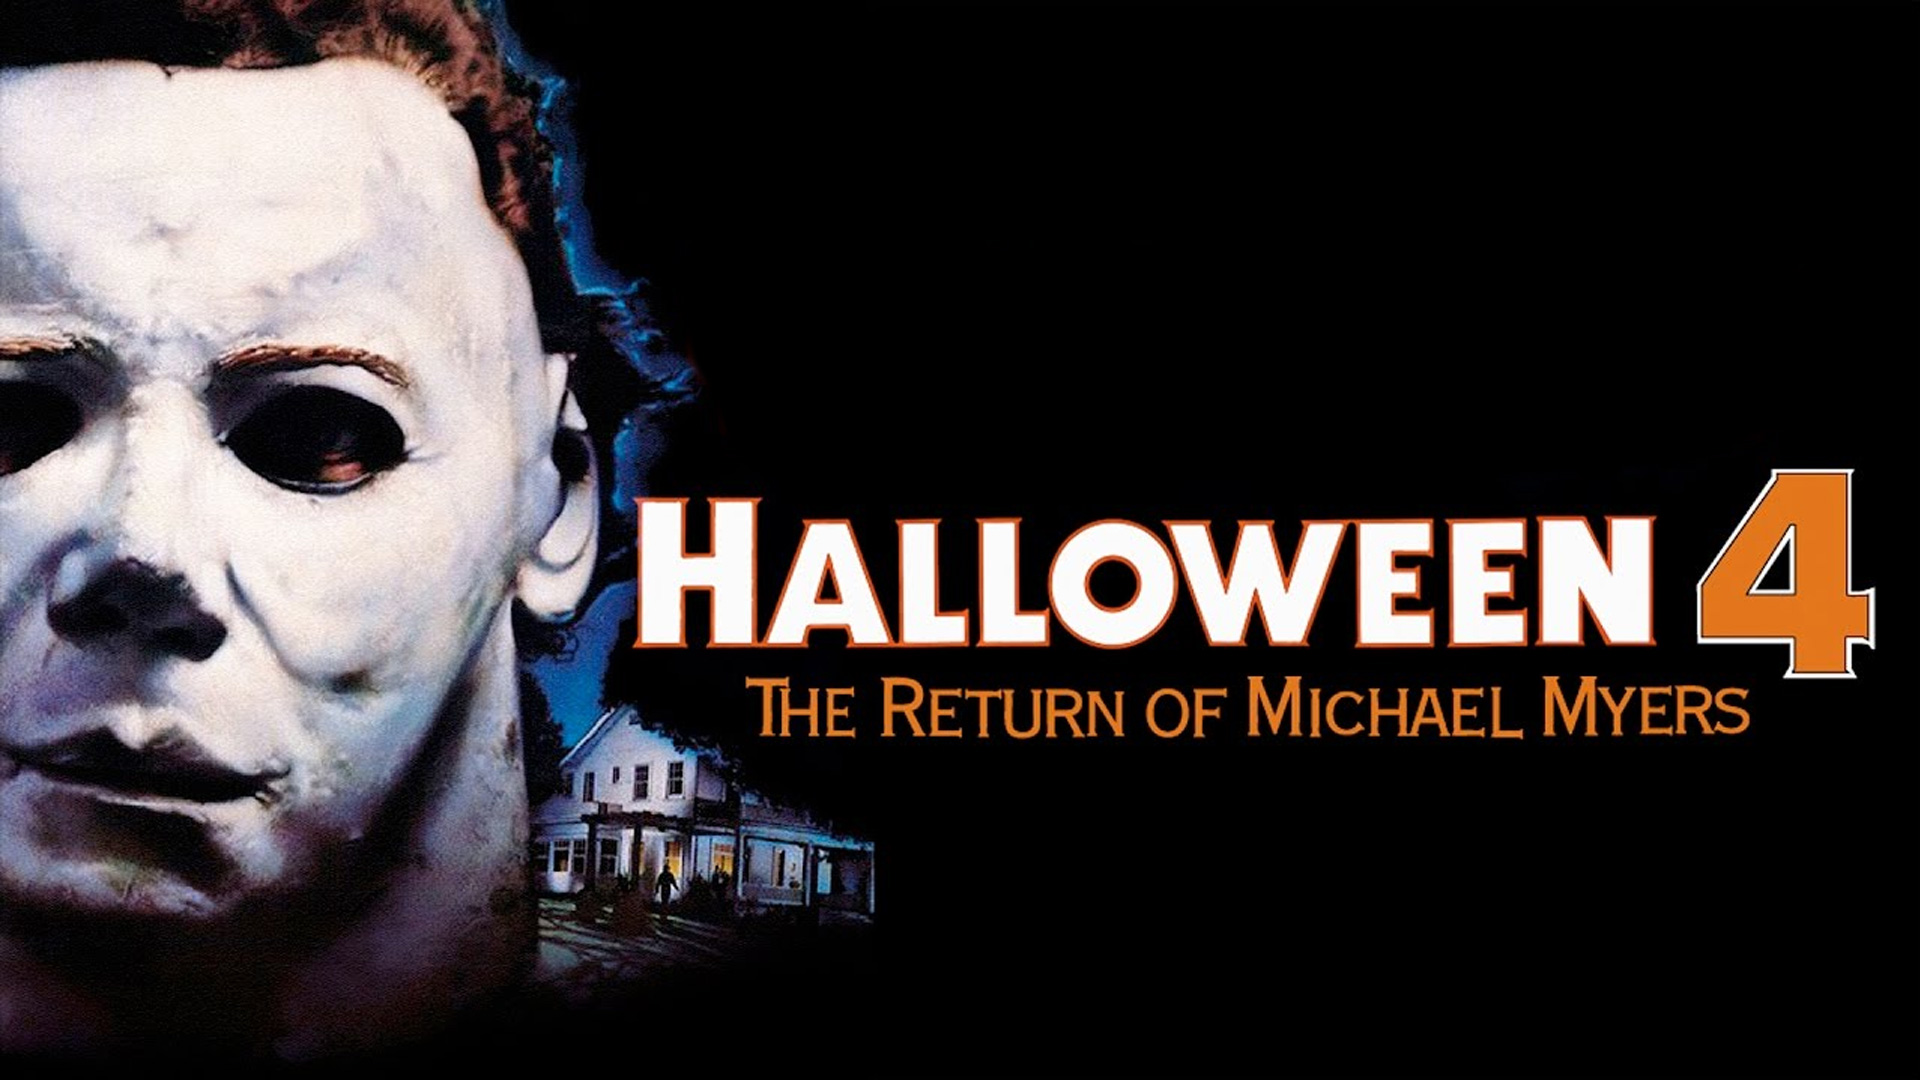 halloween 4: the return of michael myers (1988)bloody date night